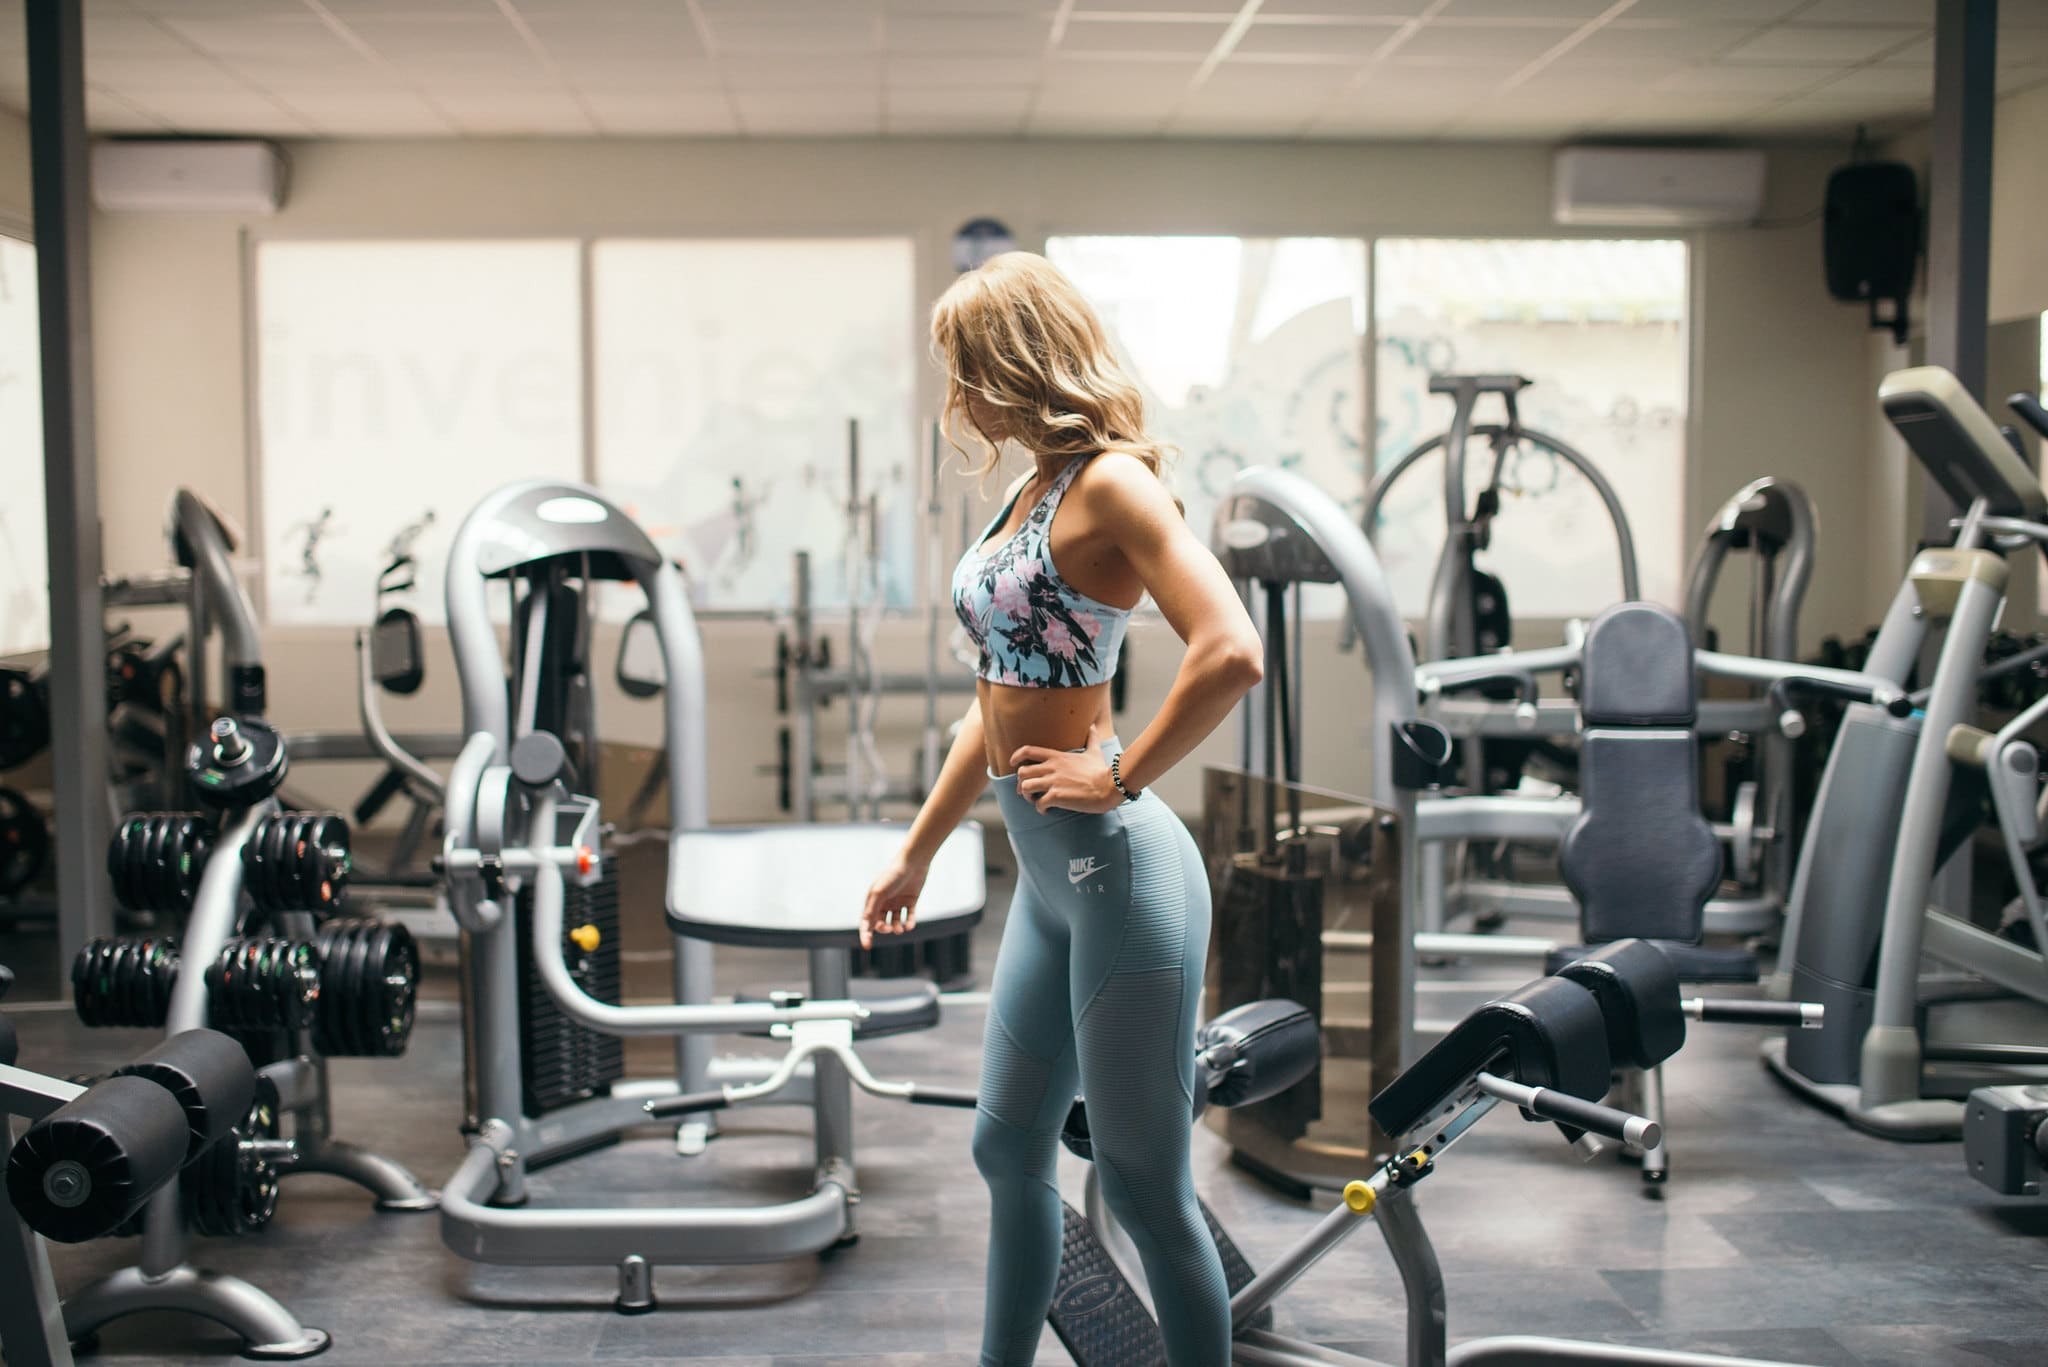 Does Working Out Make Your Face Look Better